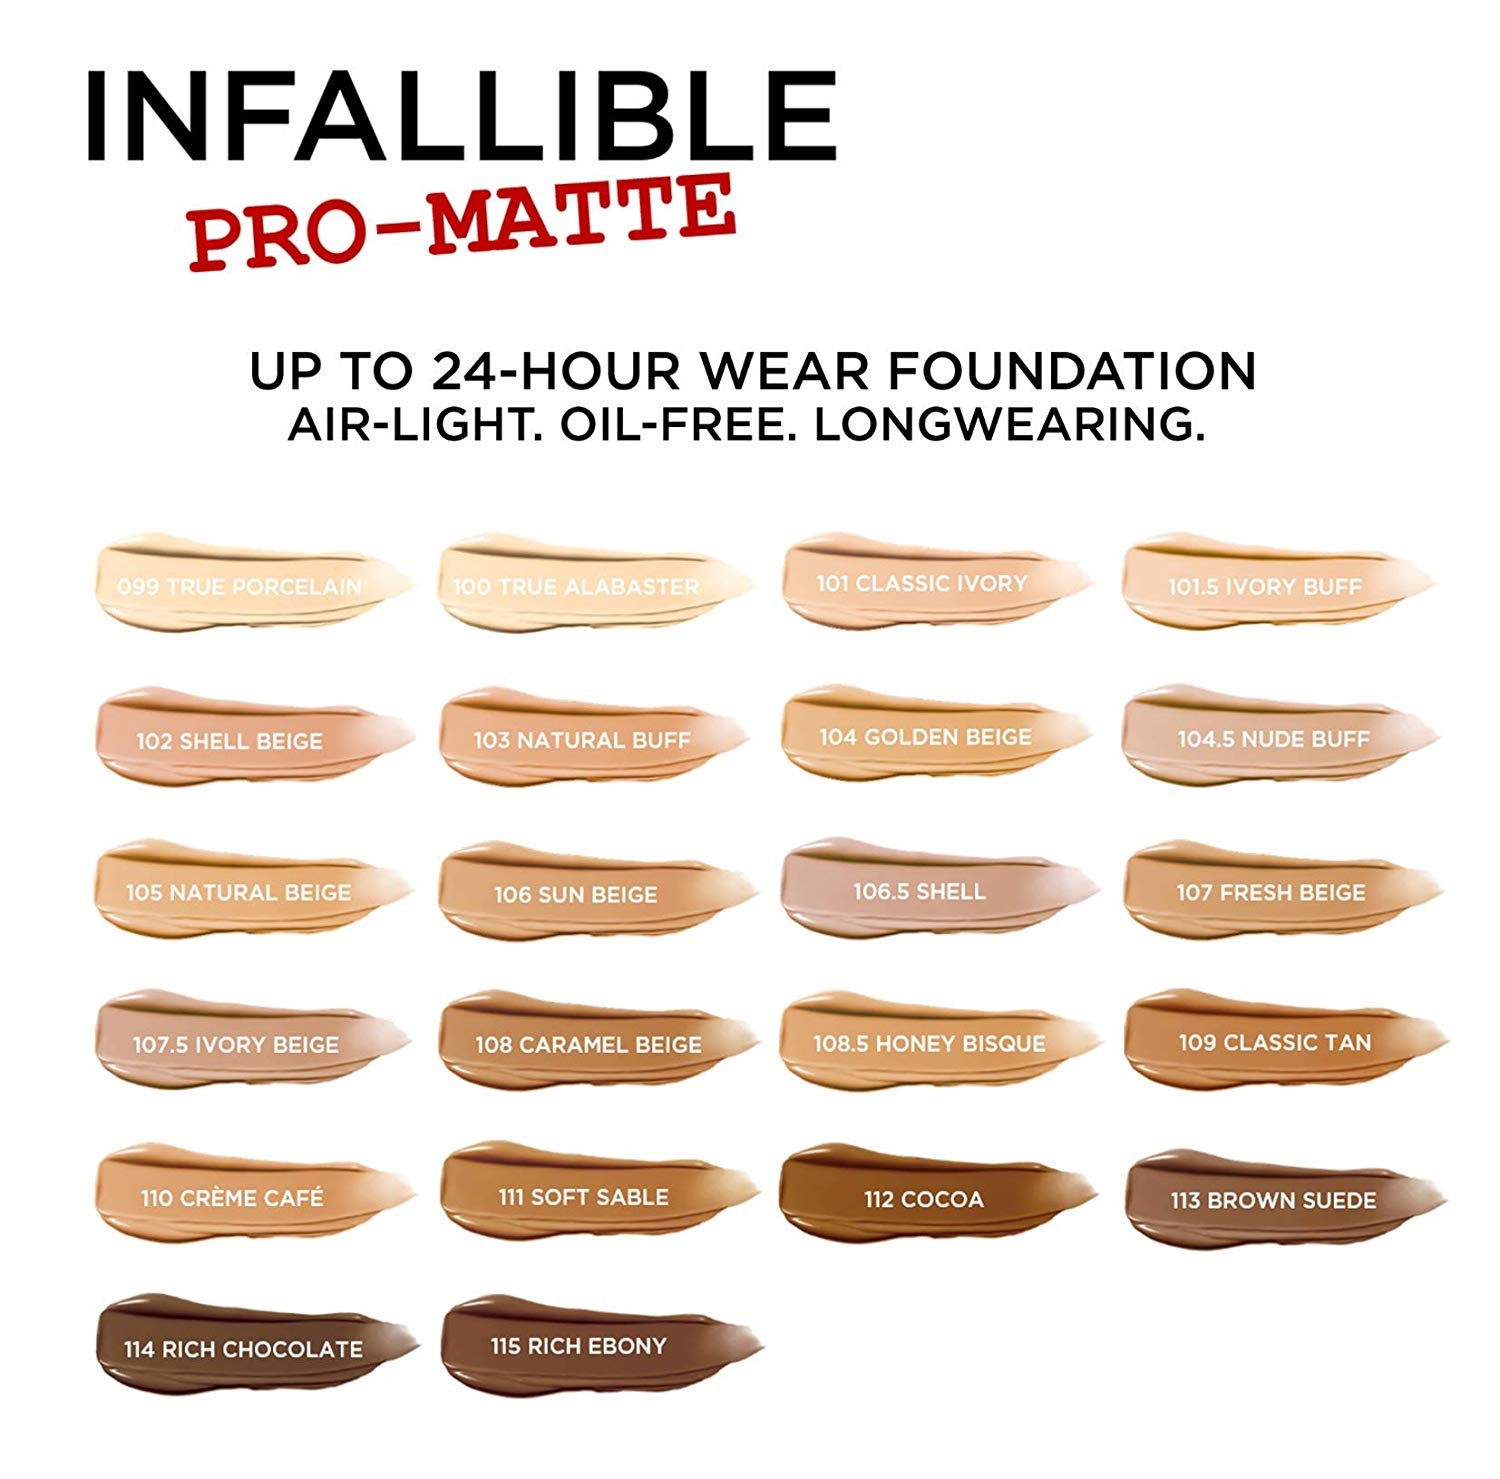 L Oreal Paris Makeup Infallible Pro Matte Liquid Longwear Foundation Ivory Buff 101 5 30ml By L Oreal Paris Shop Online For Beauty In The United States